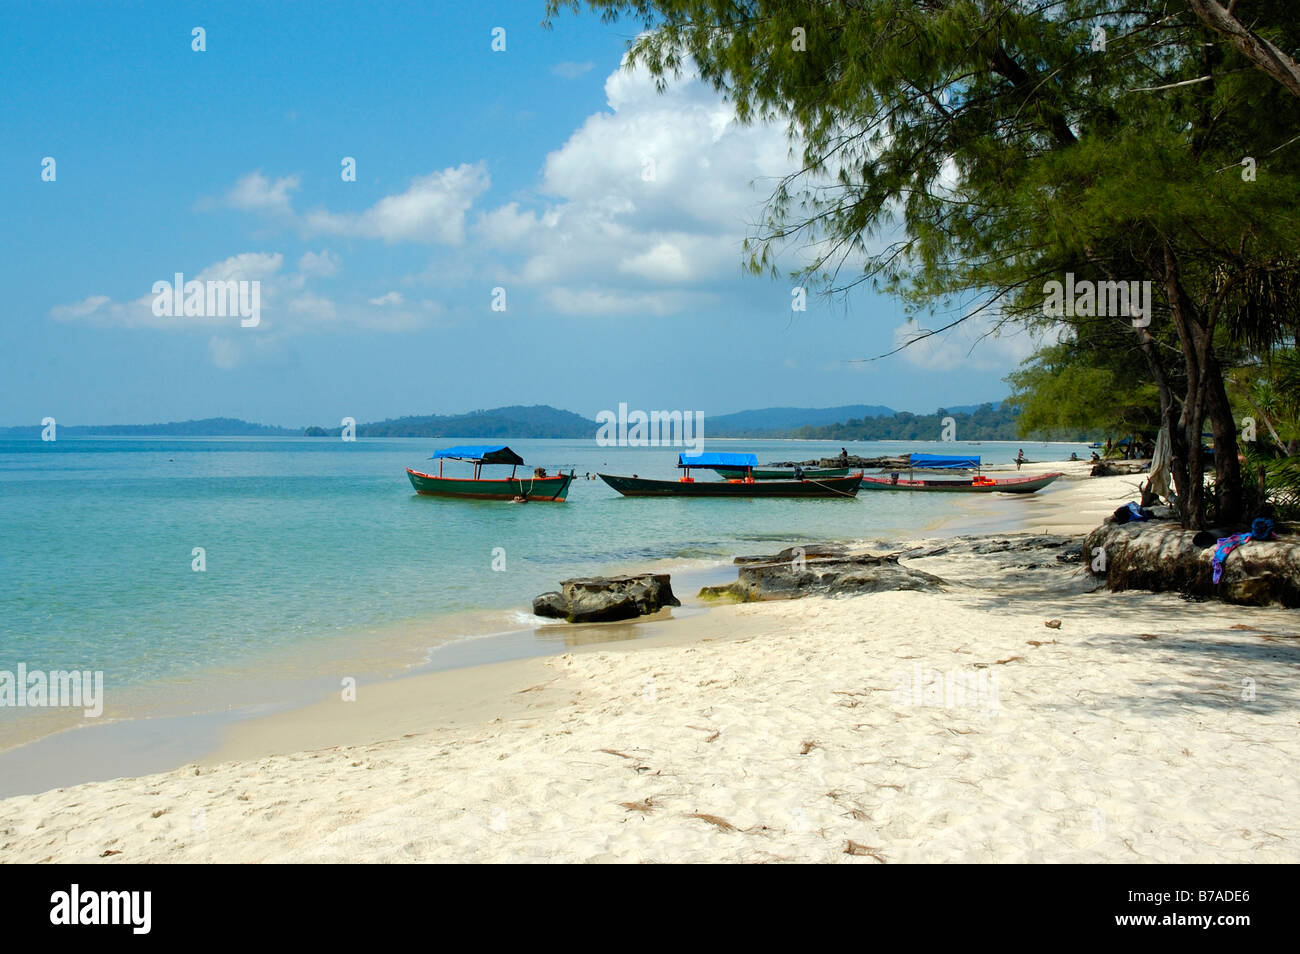 Fishing boats, secluded white sandy beach, clear blue water, Ream Nationalpark near Sihanoukville, Kompong Som, Stock Photo